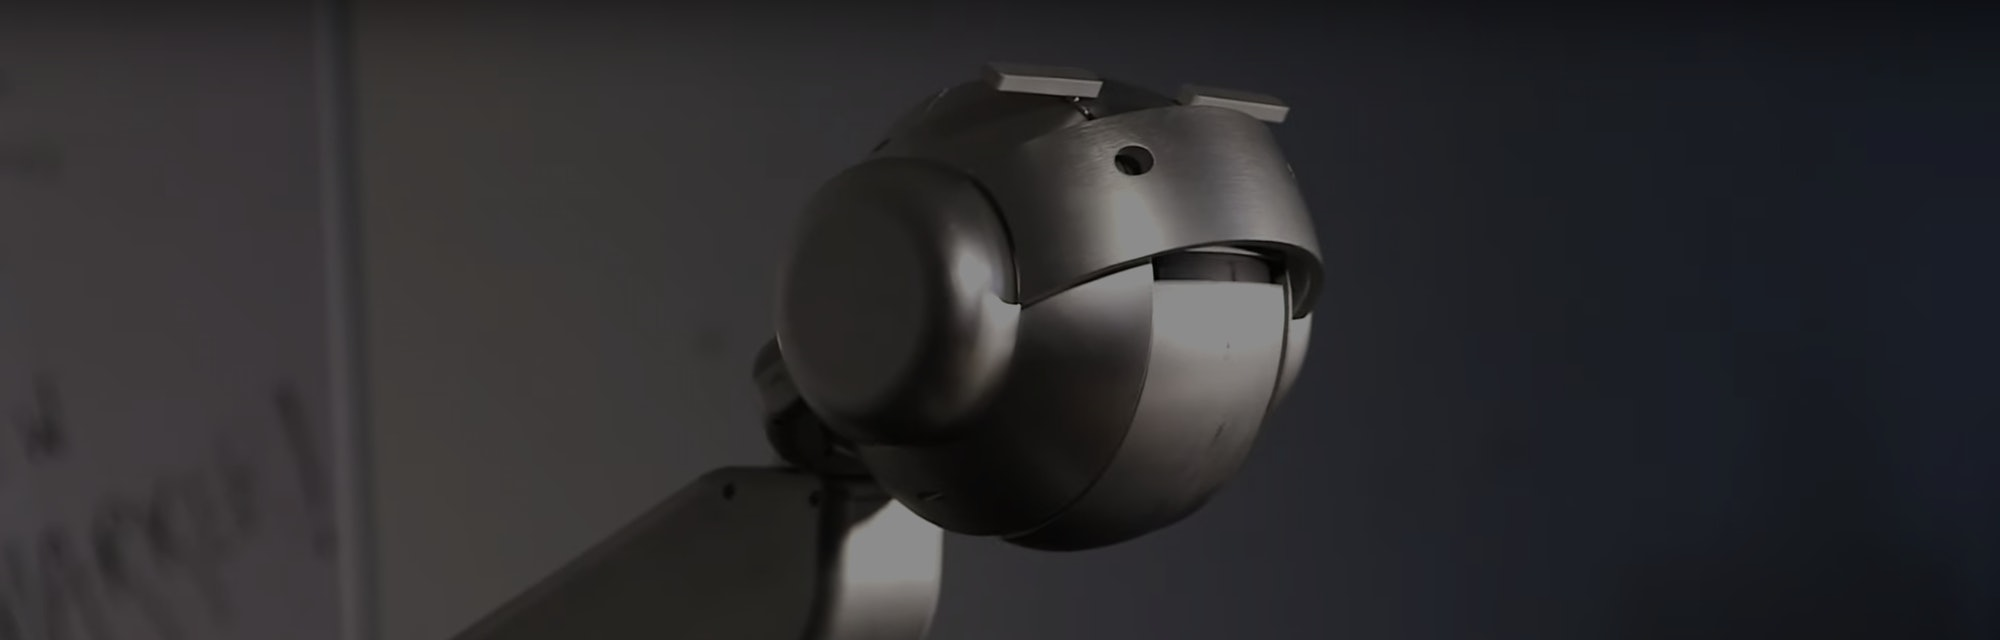 Shimon the robot, developed by Gil Weinberg, is seen mid-singing.